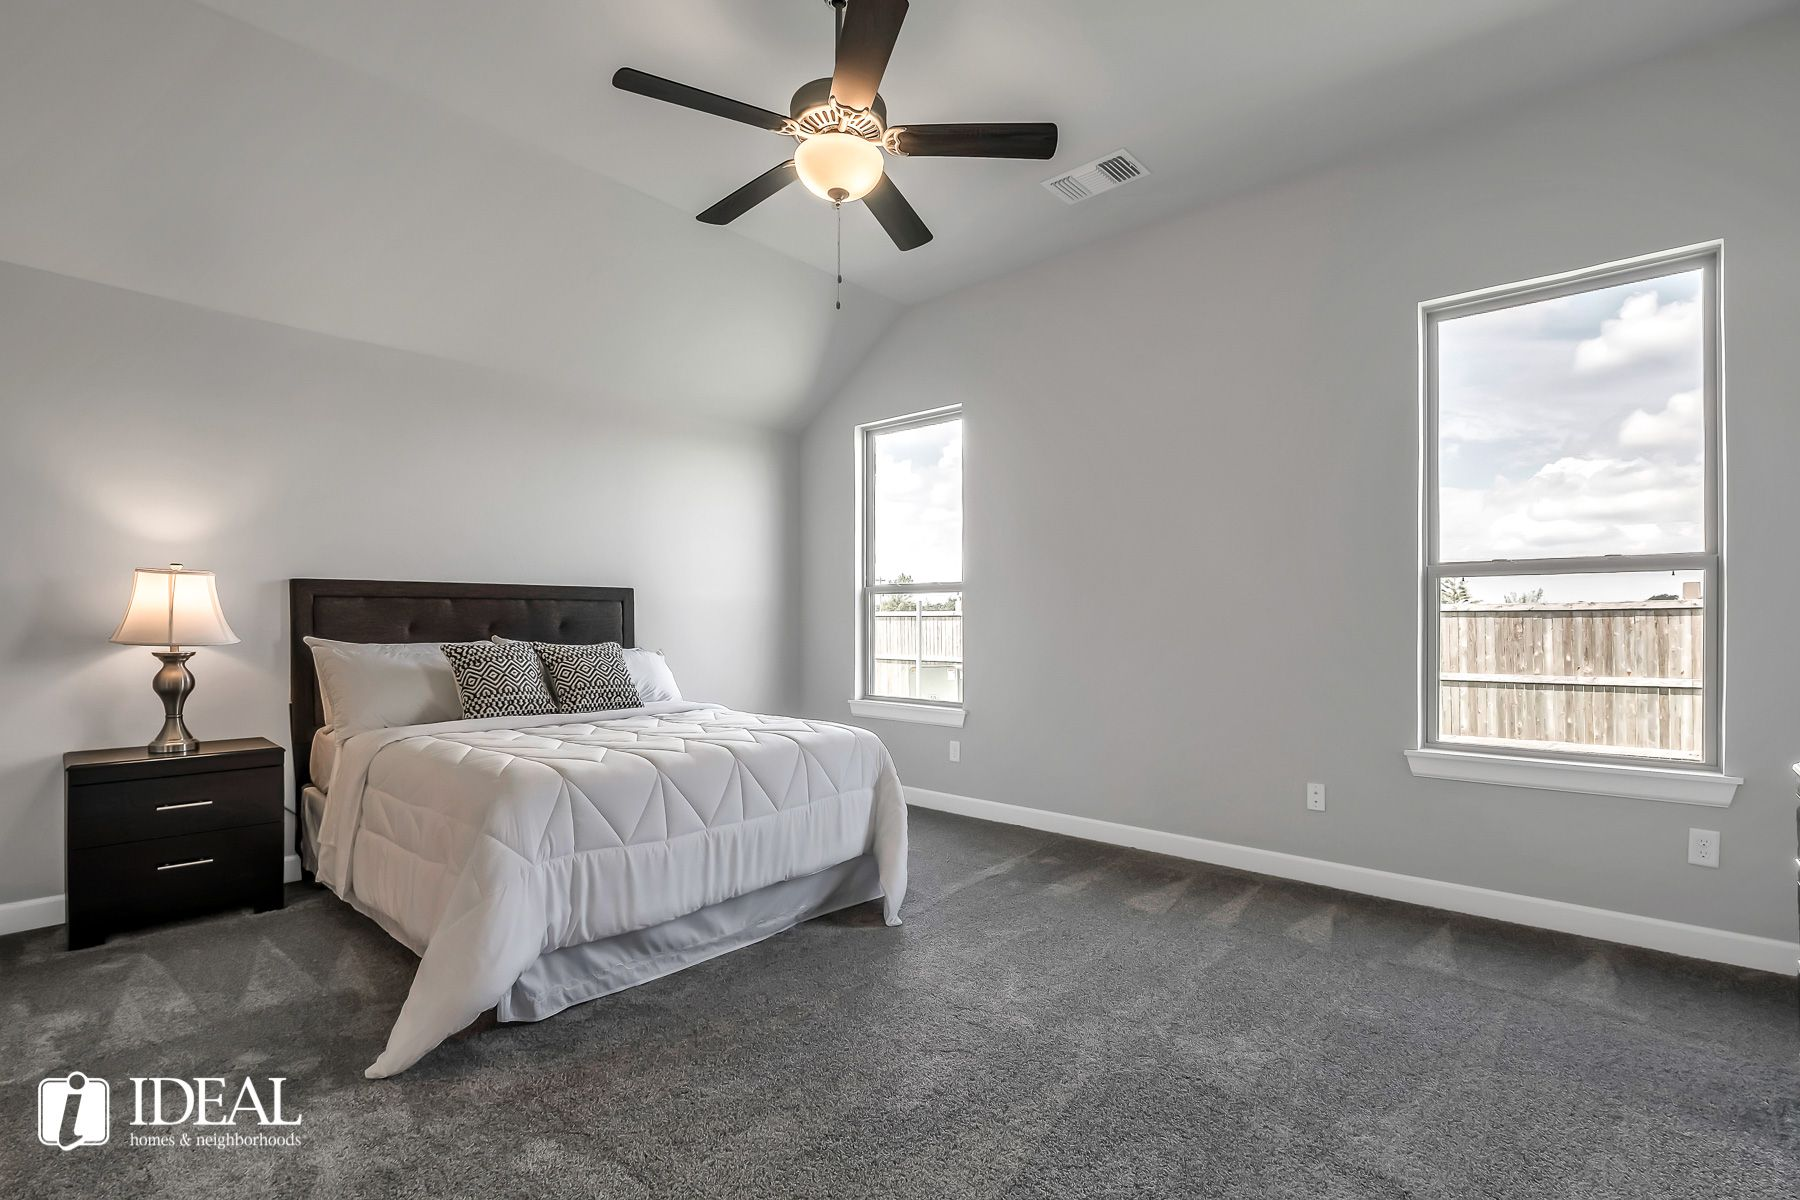 Bedroom featured in the Orwell Modern By Ideal Homes in Oklahoma City, OK